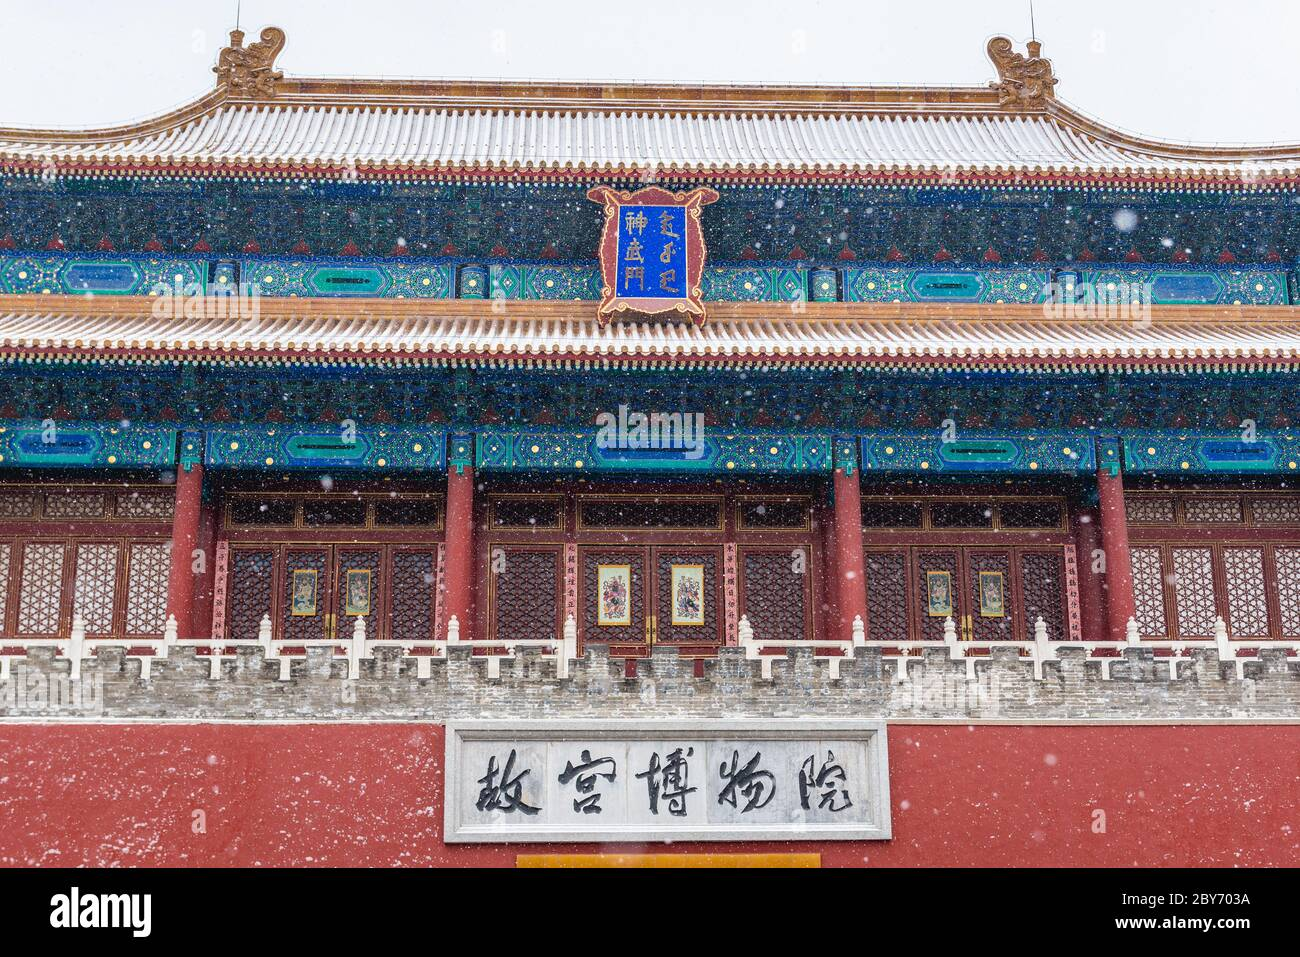 Shenwumen - Gate of Divine Prowess also called Gate of Divine Might - northern gate of Forbidden City palace complex in Beijing, China Stock Photo